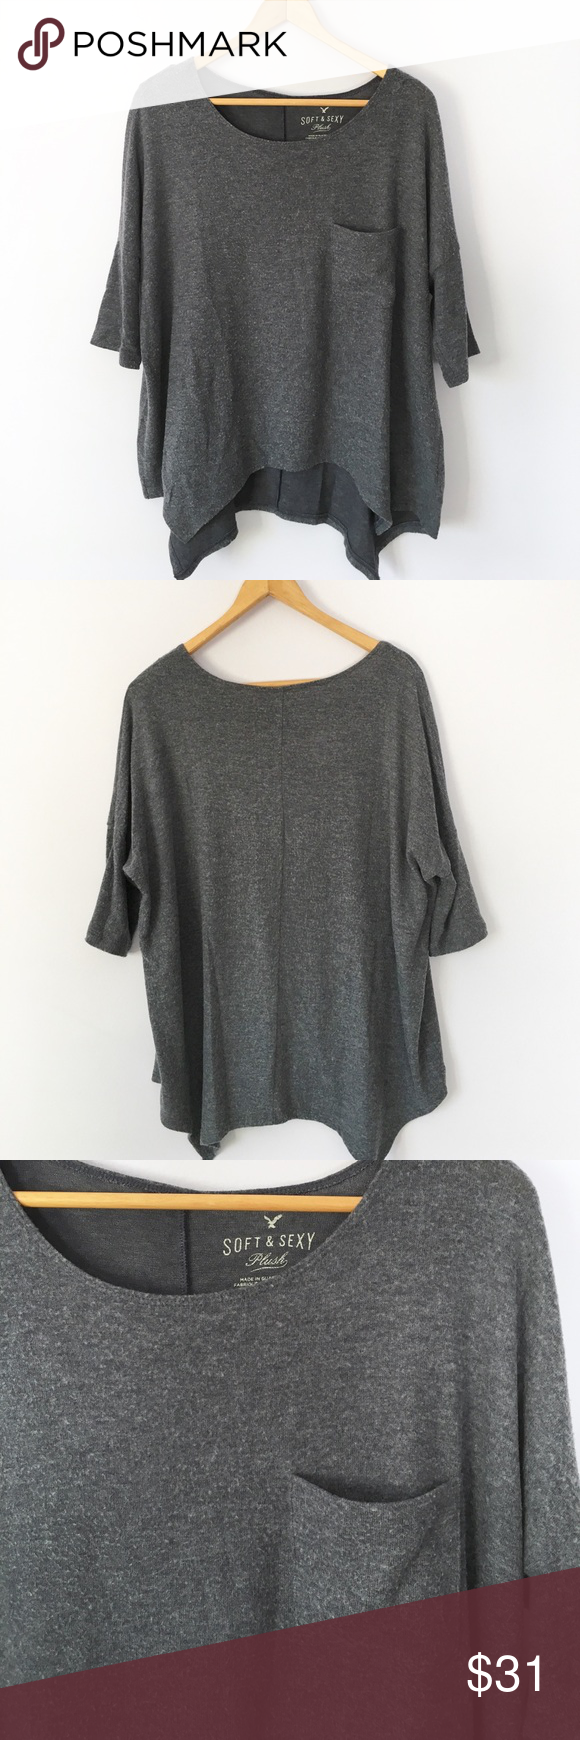 ✨sale!✨AE soft and sexy blue-gray plush boxy tee AE soft and sexy plush boxy tee in gorgeous blue-gray. So soft and cozy! 3/4 sleeves, flowy flattering fit. Worn and washed a few times, has light fuzzing all over since it's plush material  • plush • sweater • pocket tee • American Eagle Outfitters Tops